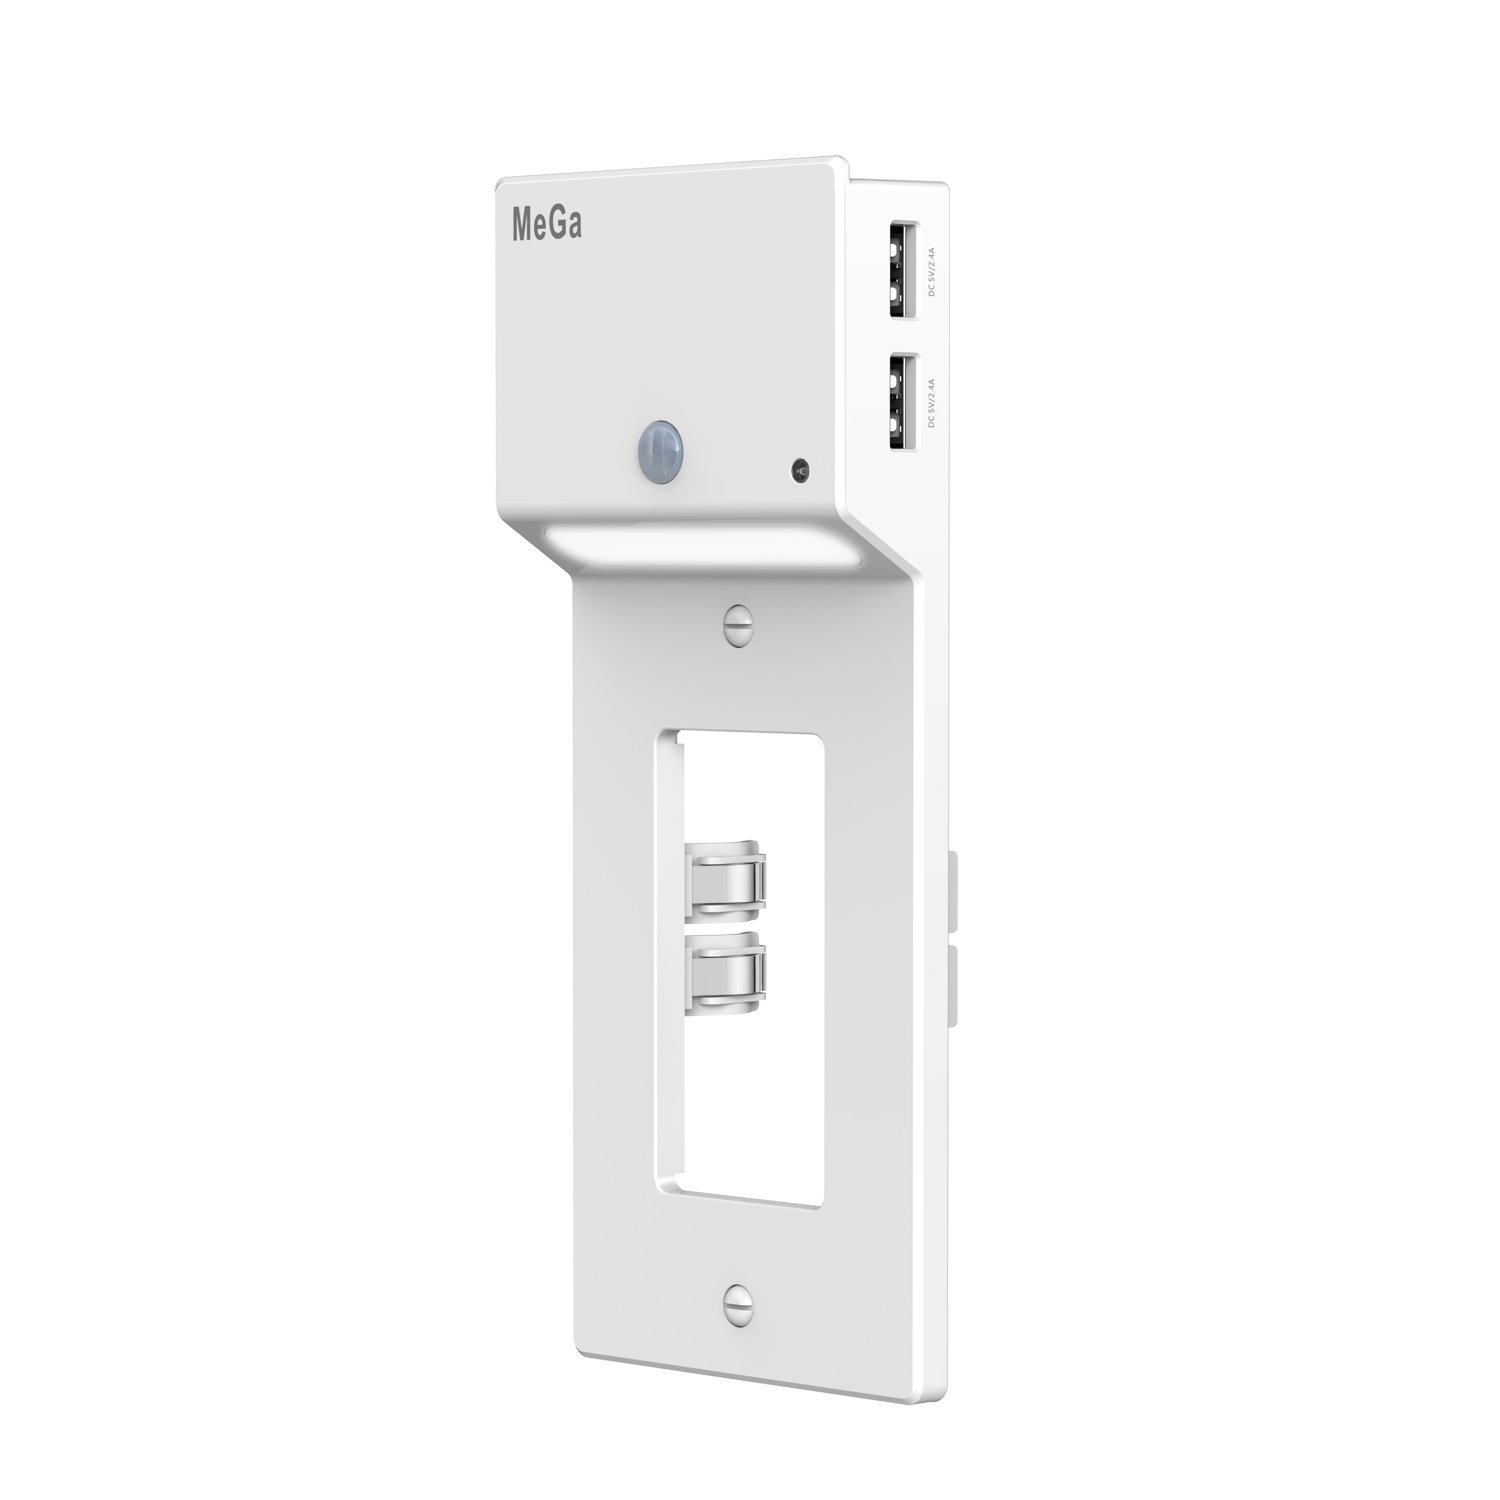 MeGa Dual USB Outlet Wall Plate Duplex Receptacle with LED Infrared Motion Detection Sensor & Light Sensor Night Lights,3.1A Dual USB Charger/Charging Station